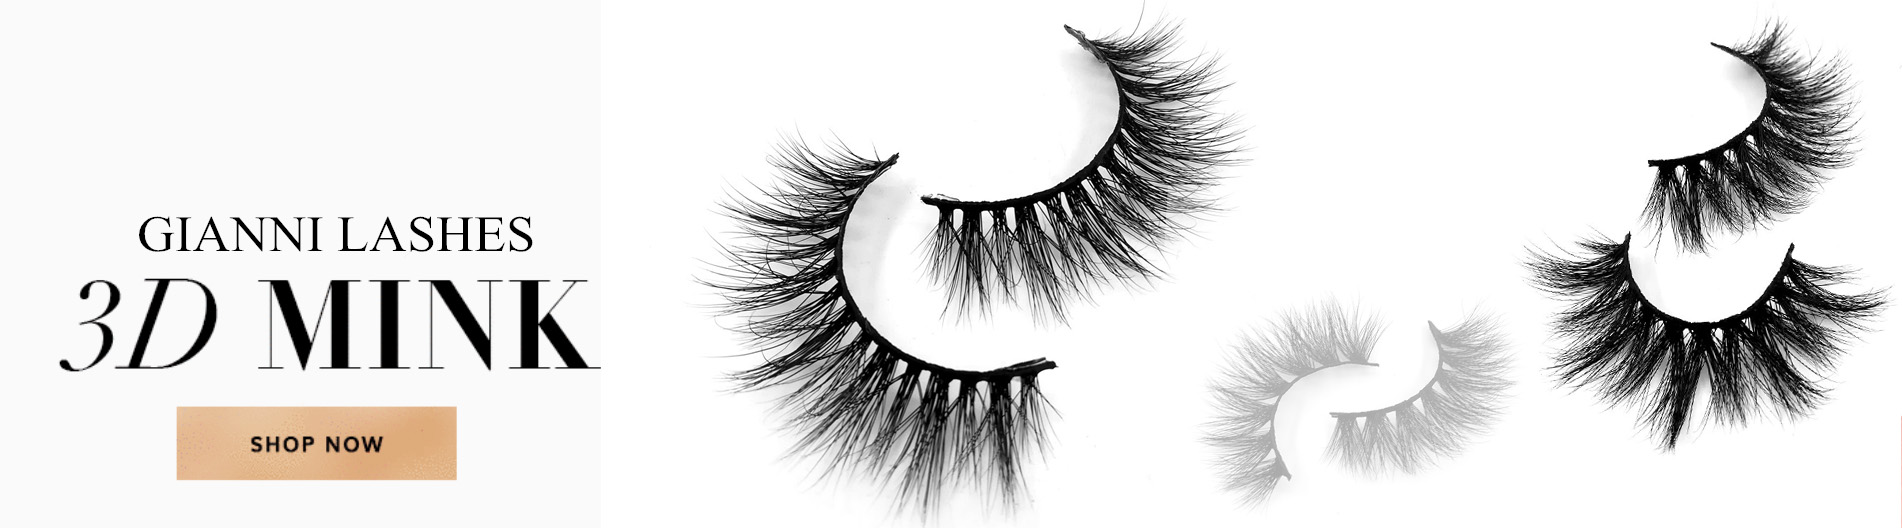 b9f41cd2845 Wholesale Mink Lashes Vendor 3D Mink Lashes Strip Manufacturer